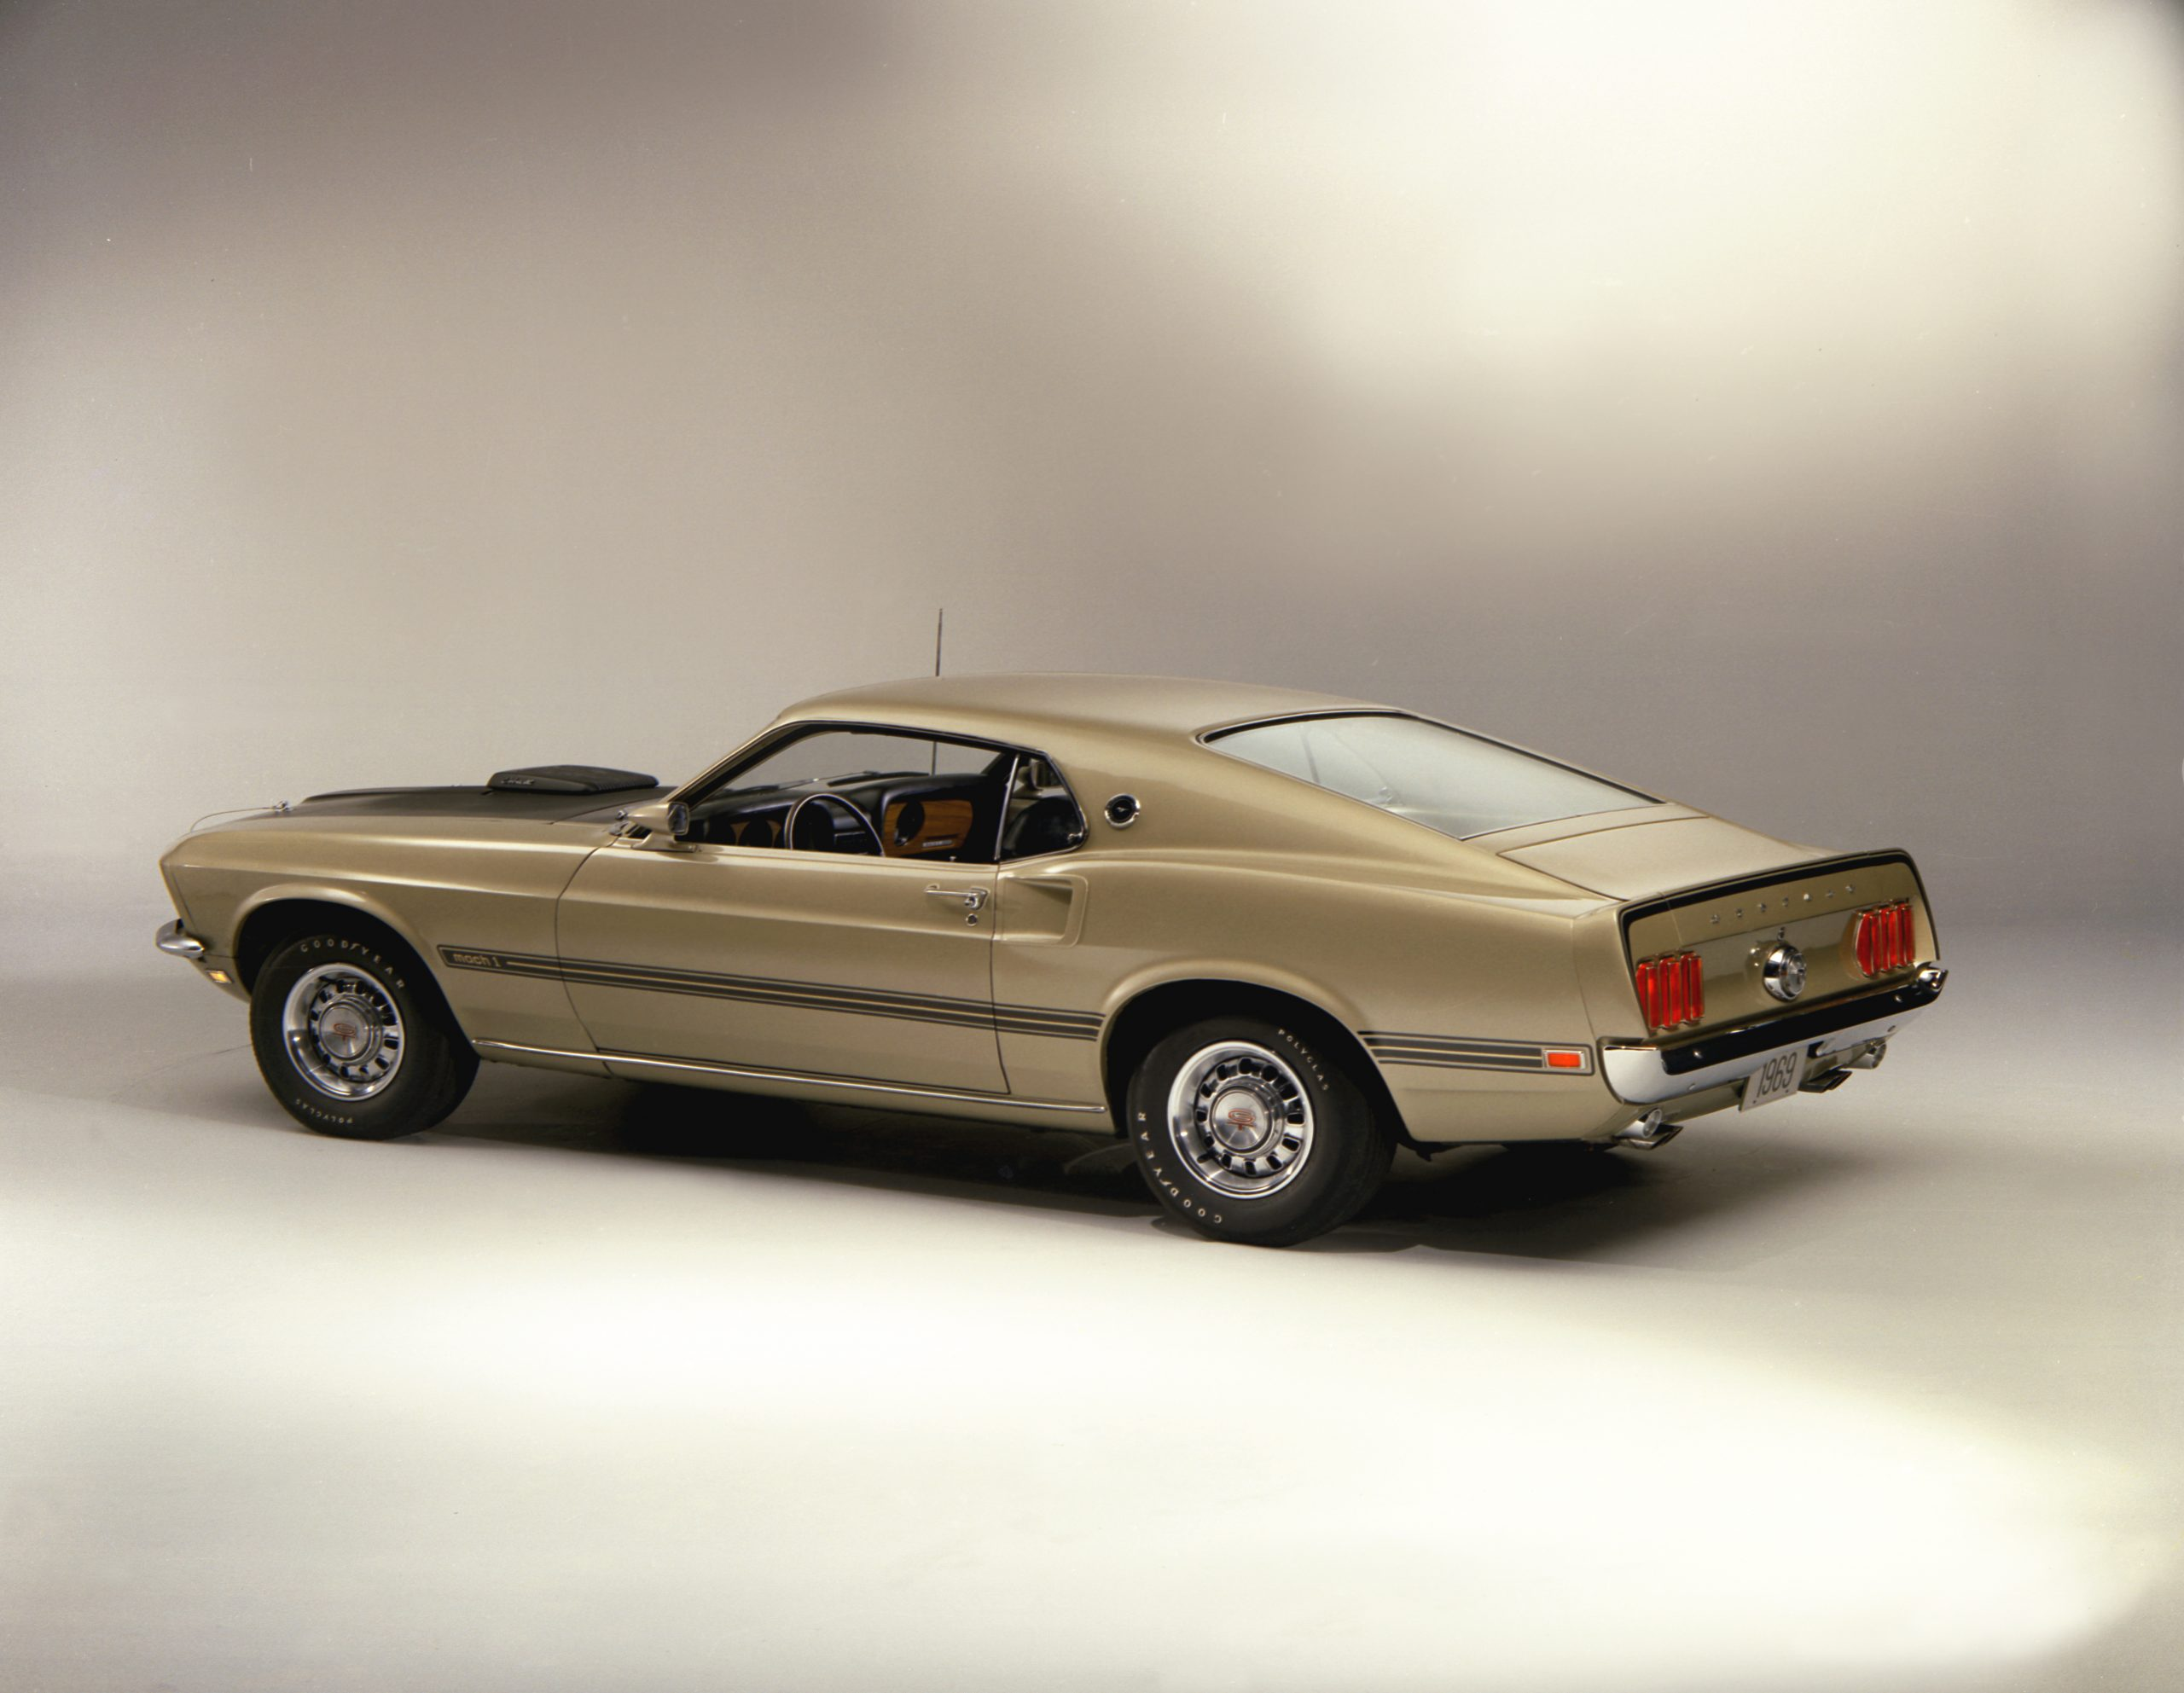 1969 Ford Mustang Mach 1 Fastback Rear Three-Quarter Studio